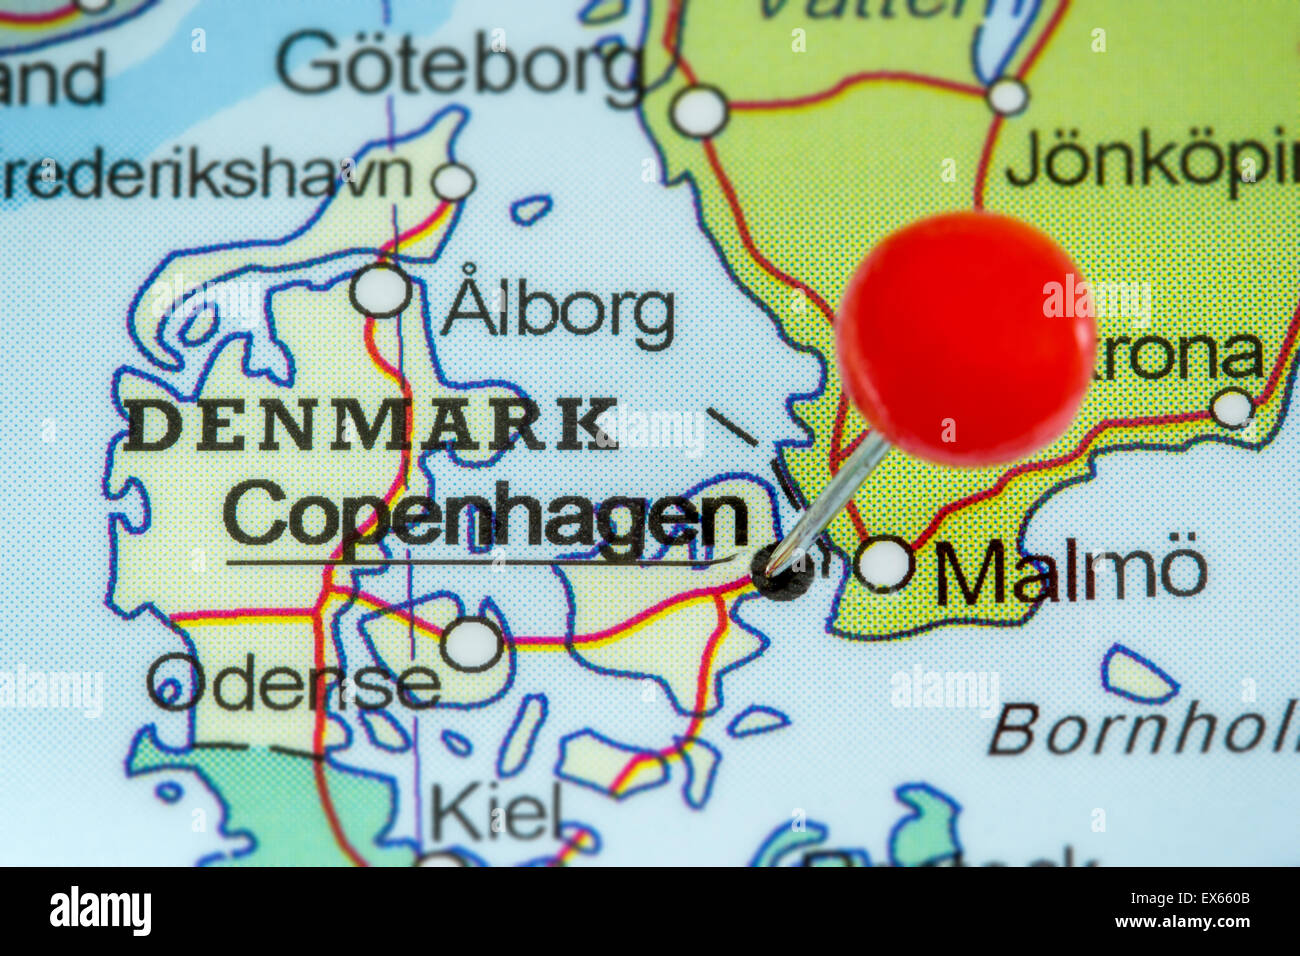 Close-up of a red pushpin on a map of Copenhagen, Denmark - Stock Image